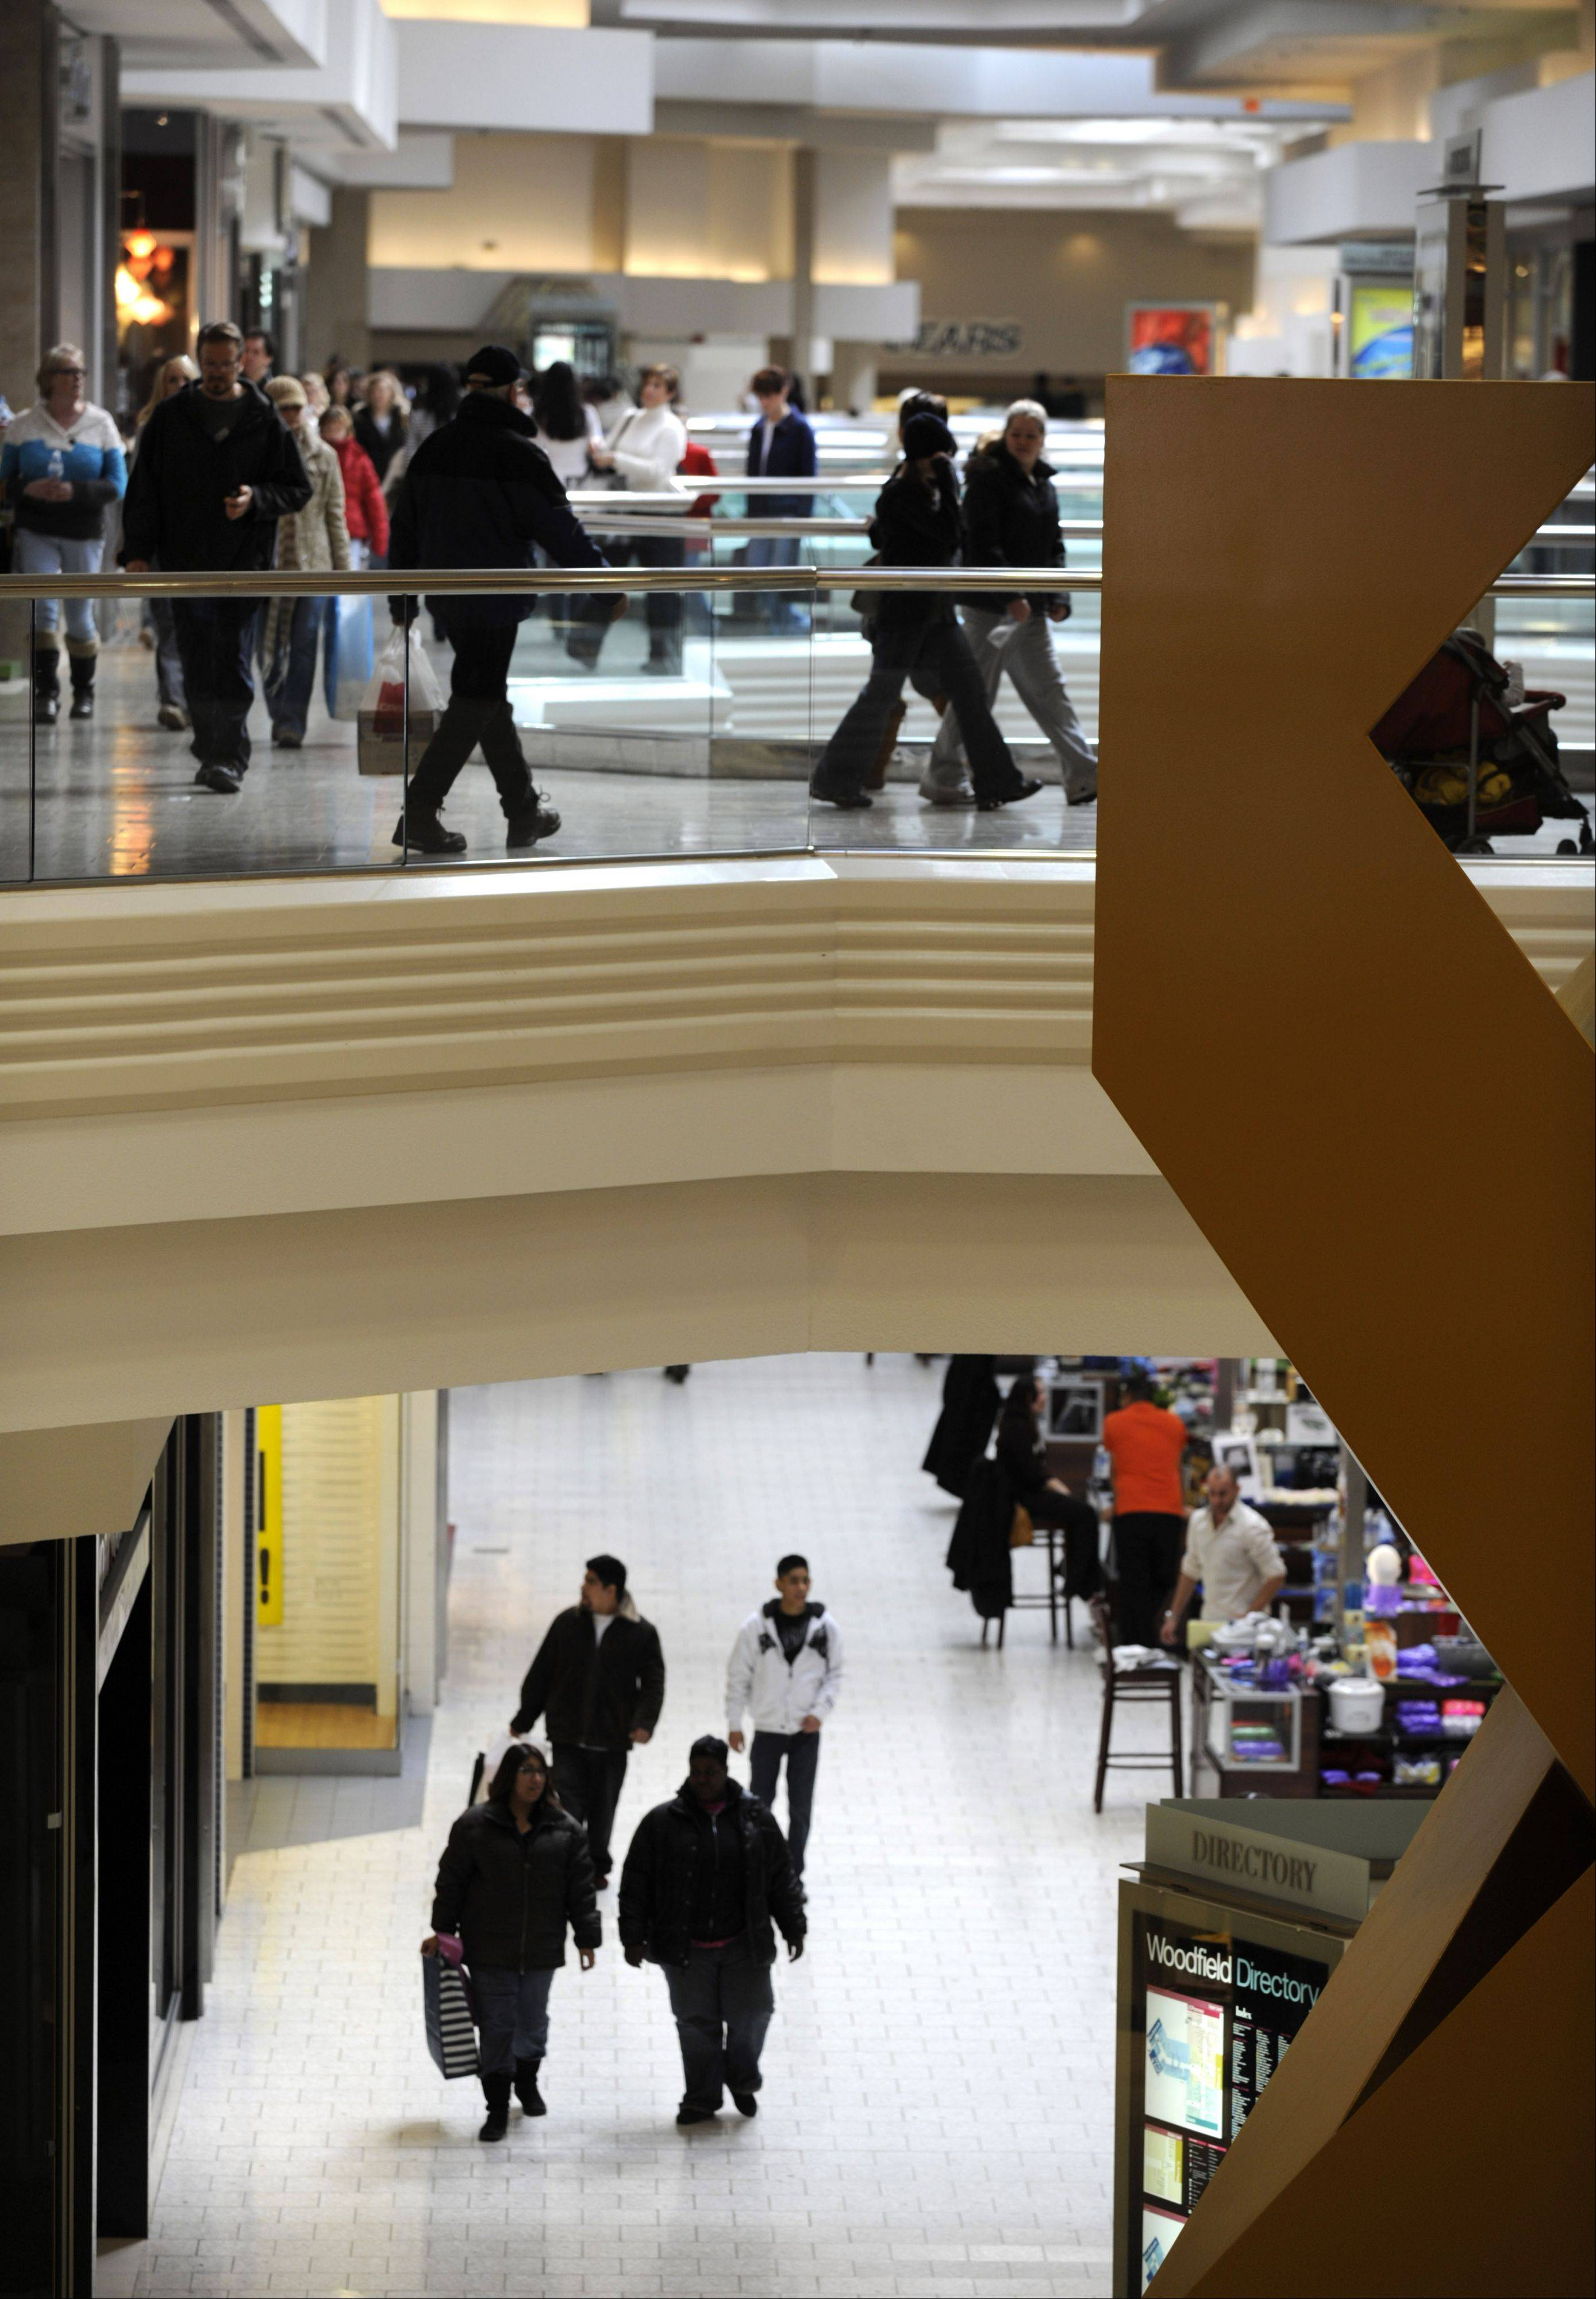 Schaumburg police say they are investigating why a 24-year-old man jumped from the second level to the first at Woodfield Mall late Saturday afternoon. Police said the man suffered serious but not life-threatening injuries and was taken to Alexian Brothers Medical Center in Elk Grove Village.